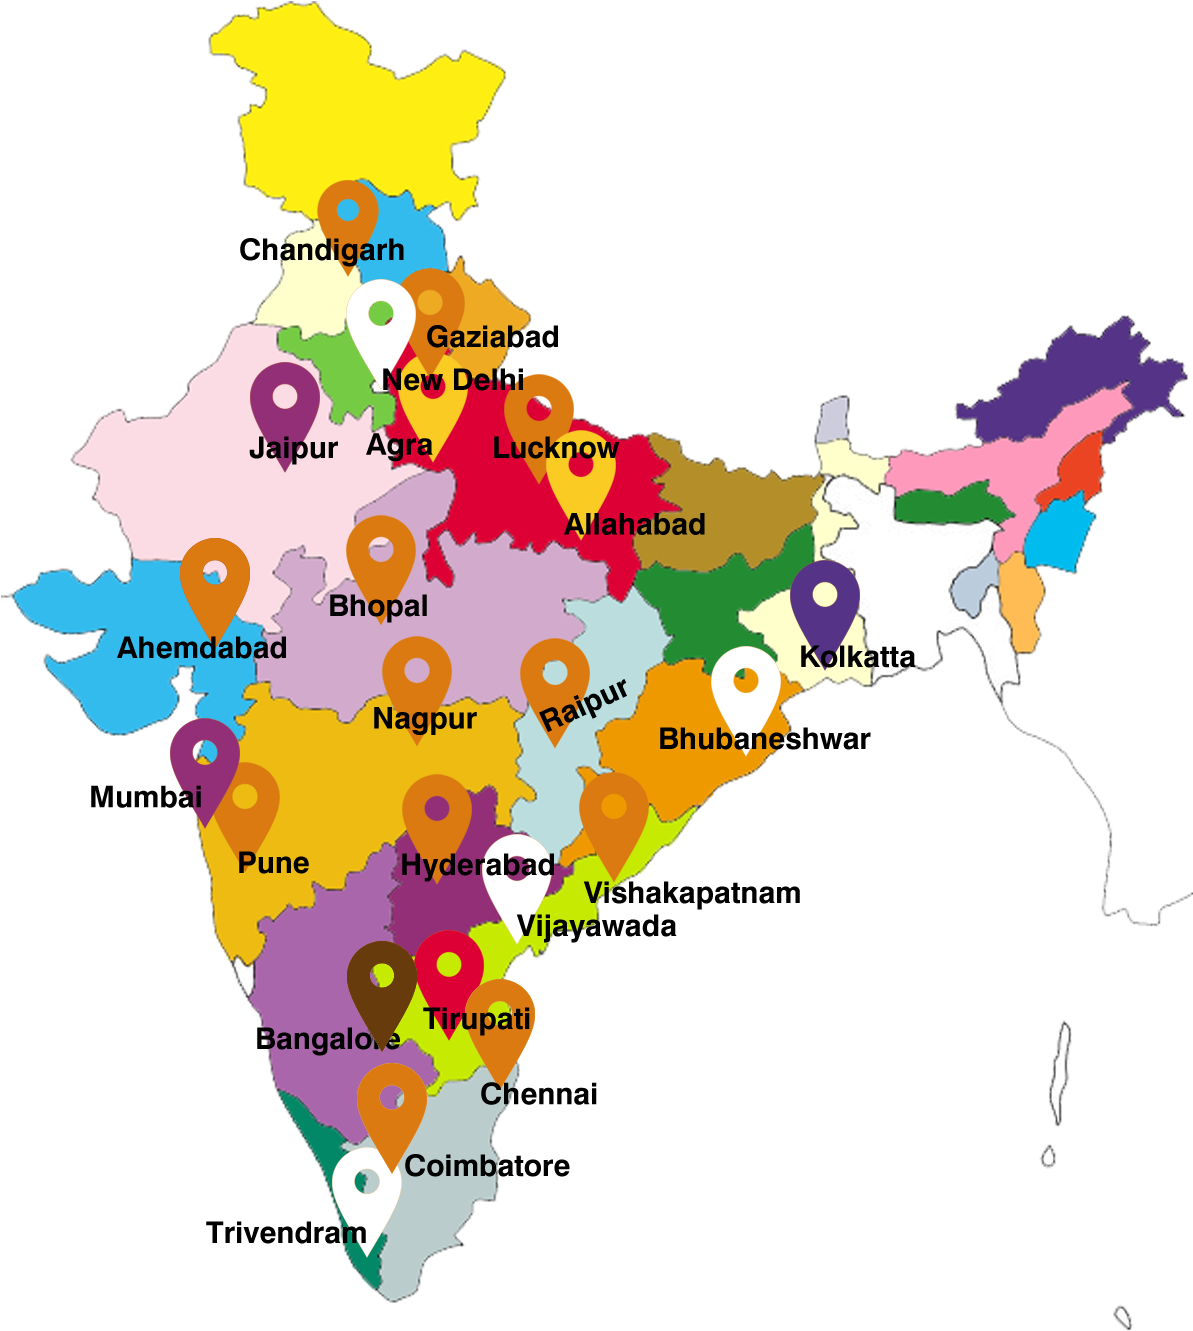 full size india map all state name India Map India State Name List Full Size Png Download Seekpng full size india map all state name